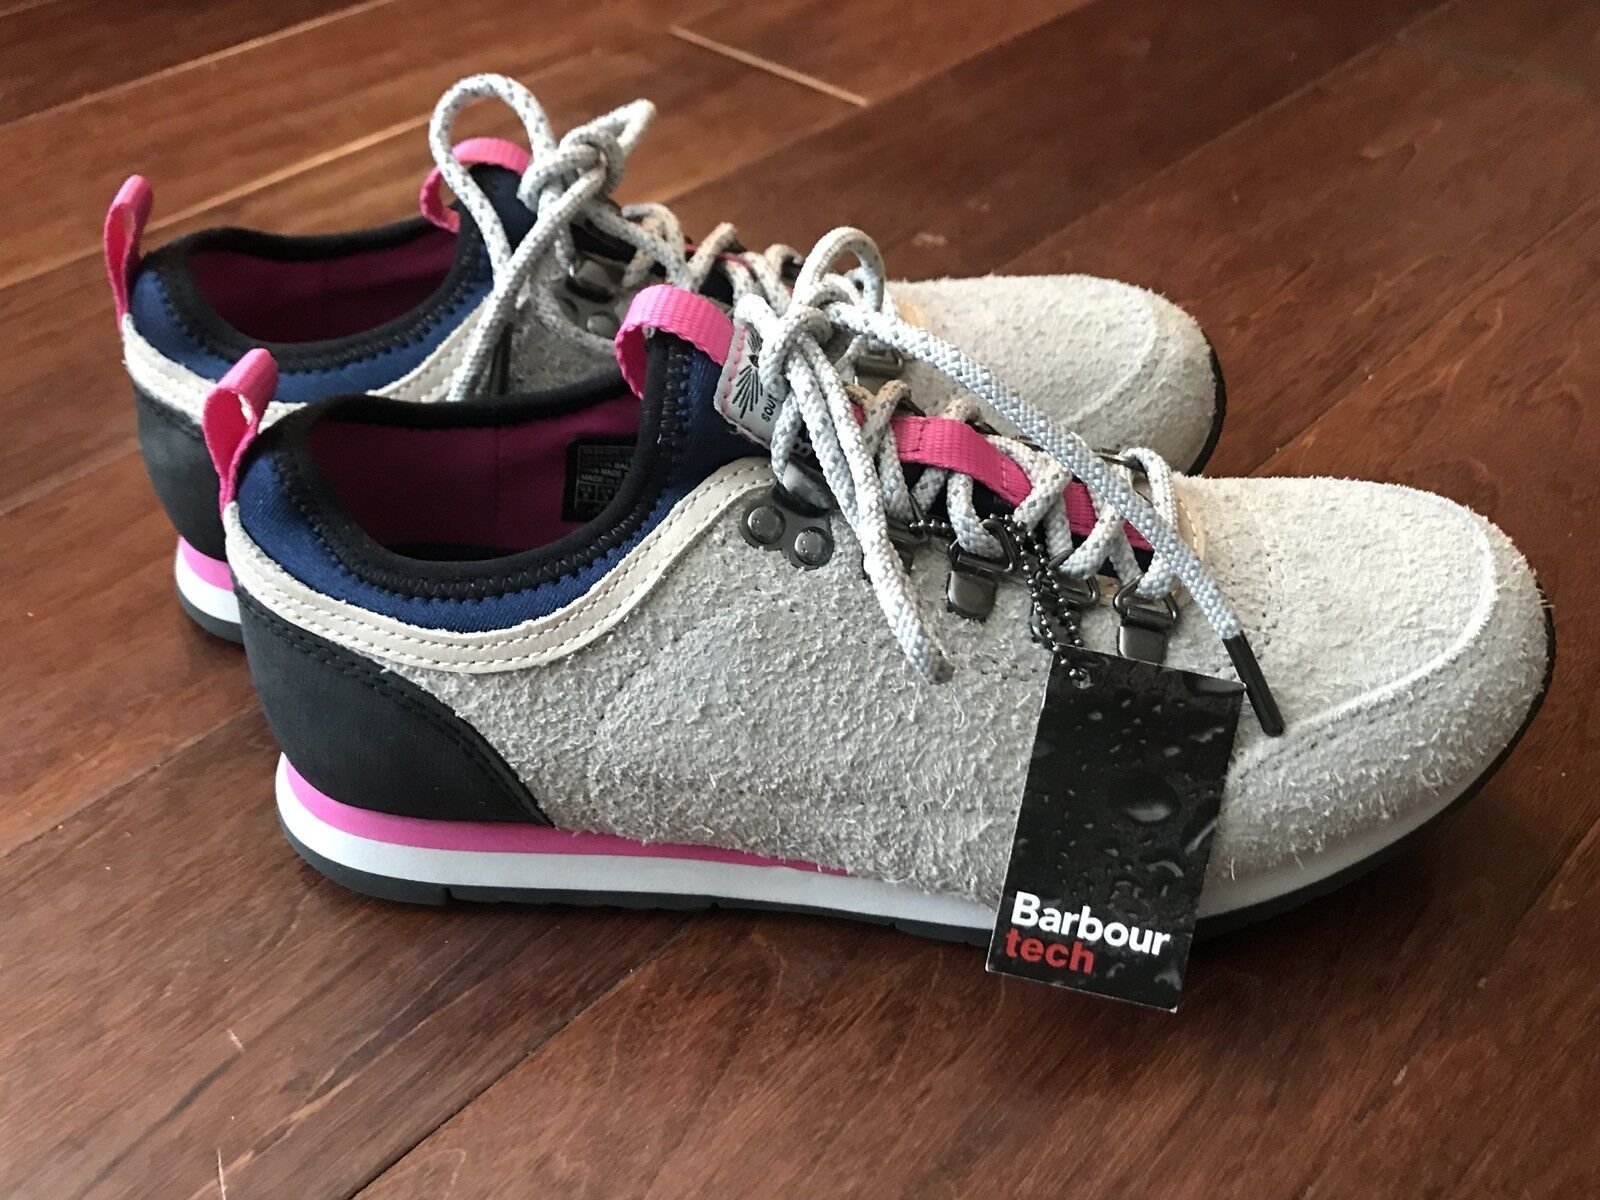 Barbour 12000 Highlands Low Gray Pink Athletic Sneaker Women's US 8 NEW